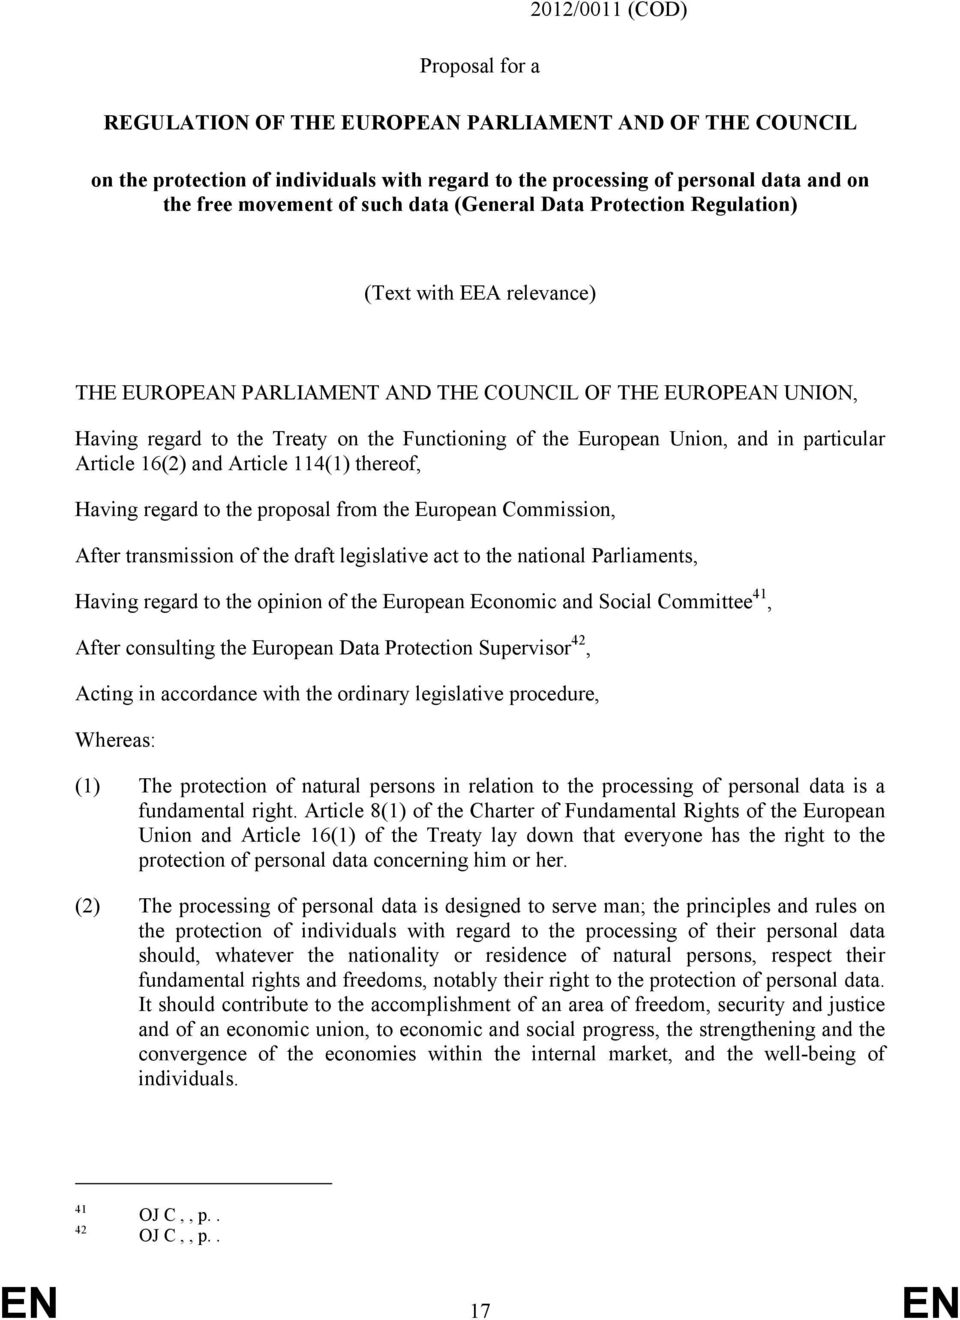 Union, and in particular Article 16(2) and Article 114(1) thereof, Having regard to the proposal from the European Commission, After transmission of the draft legislative act to the national